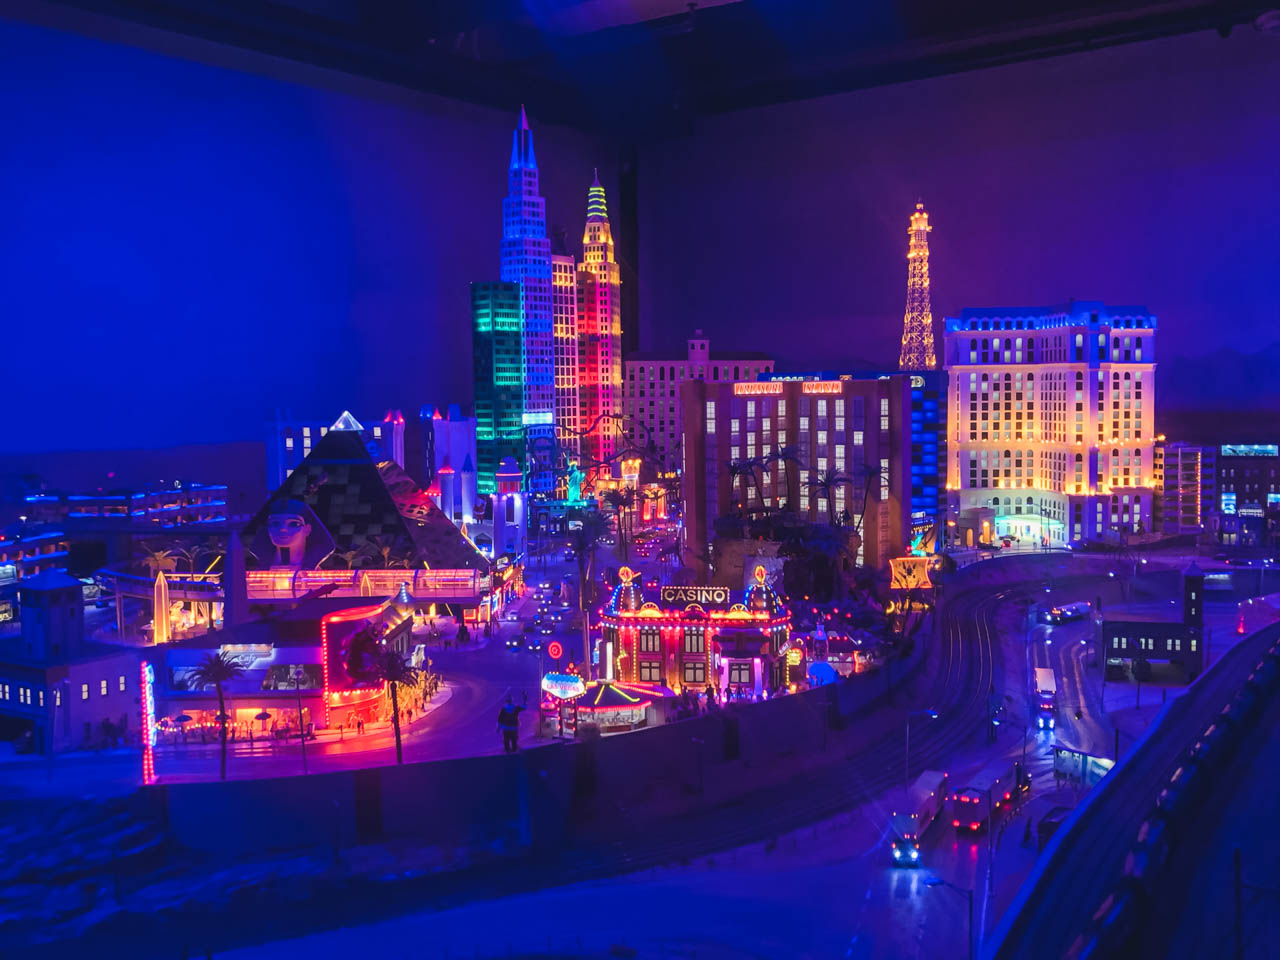 The Las Vegas section of Miniatur Wunderland in Hamburg